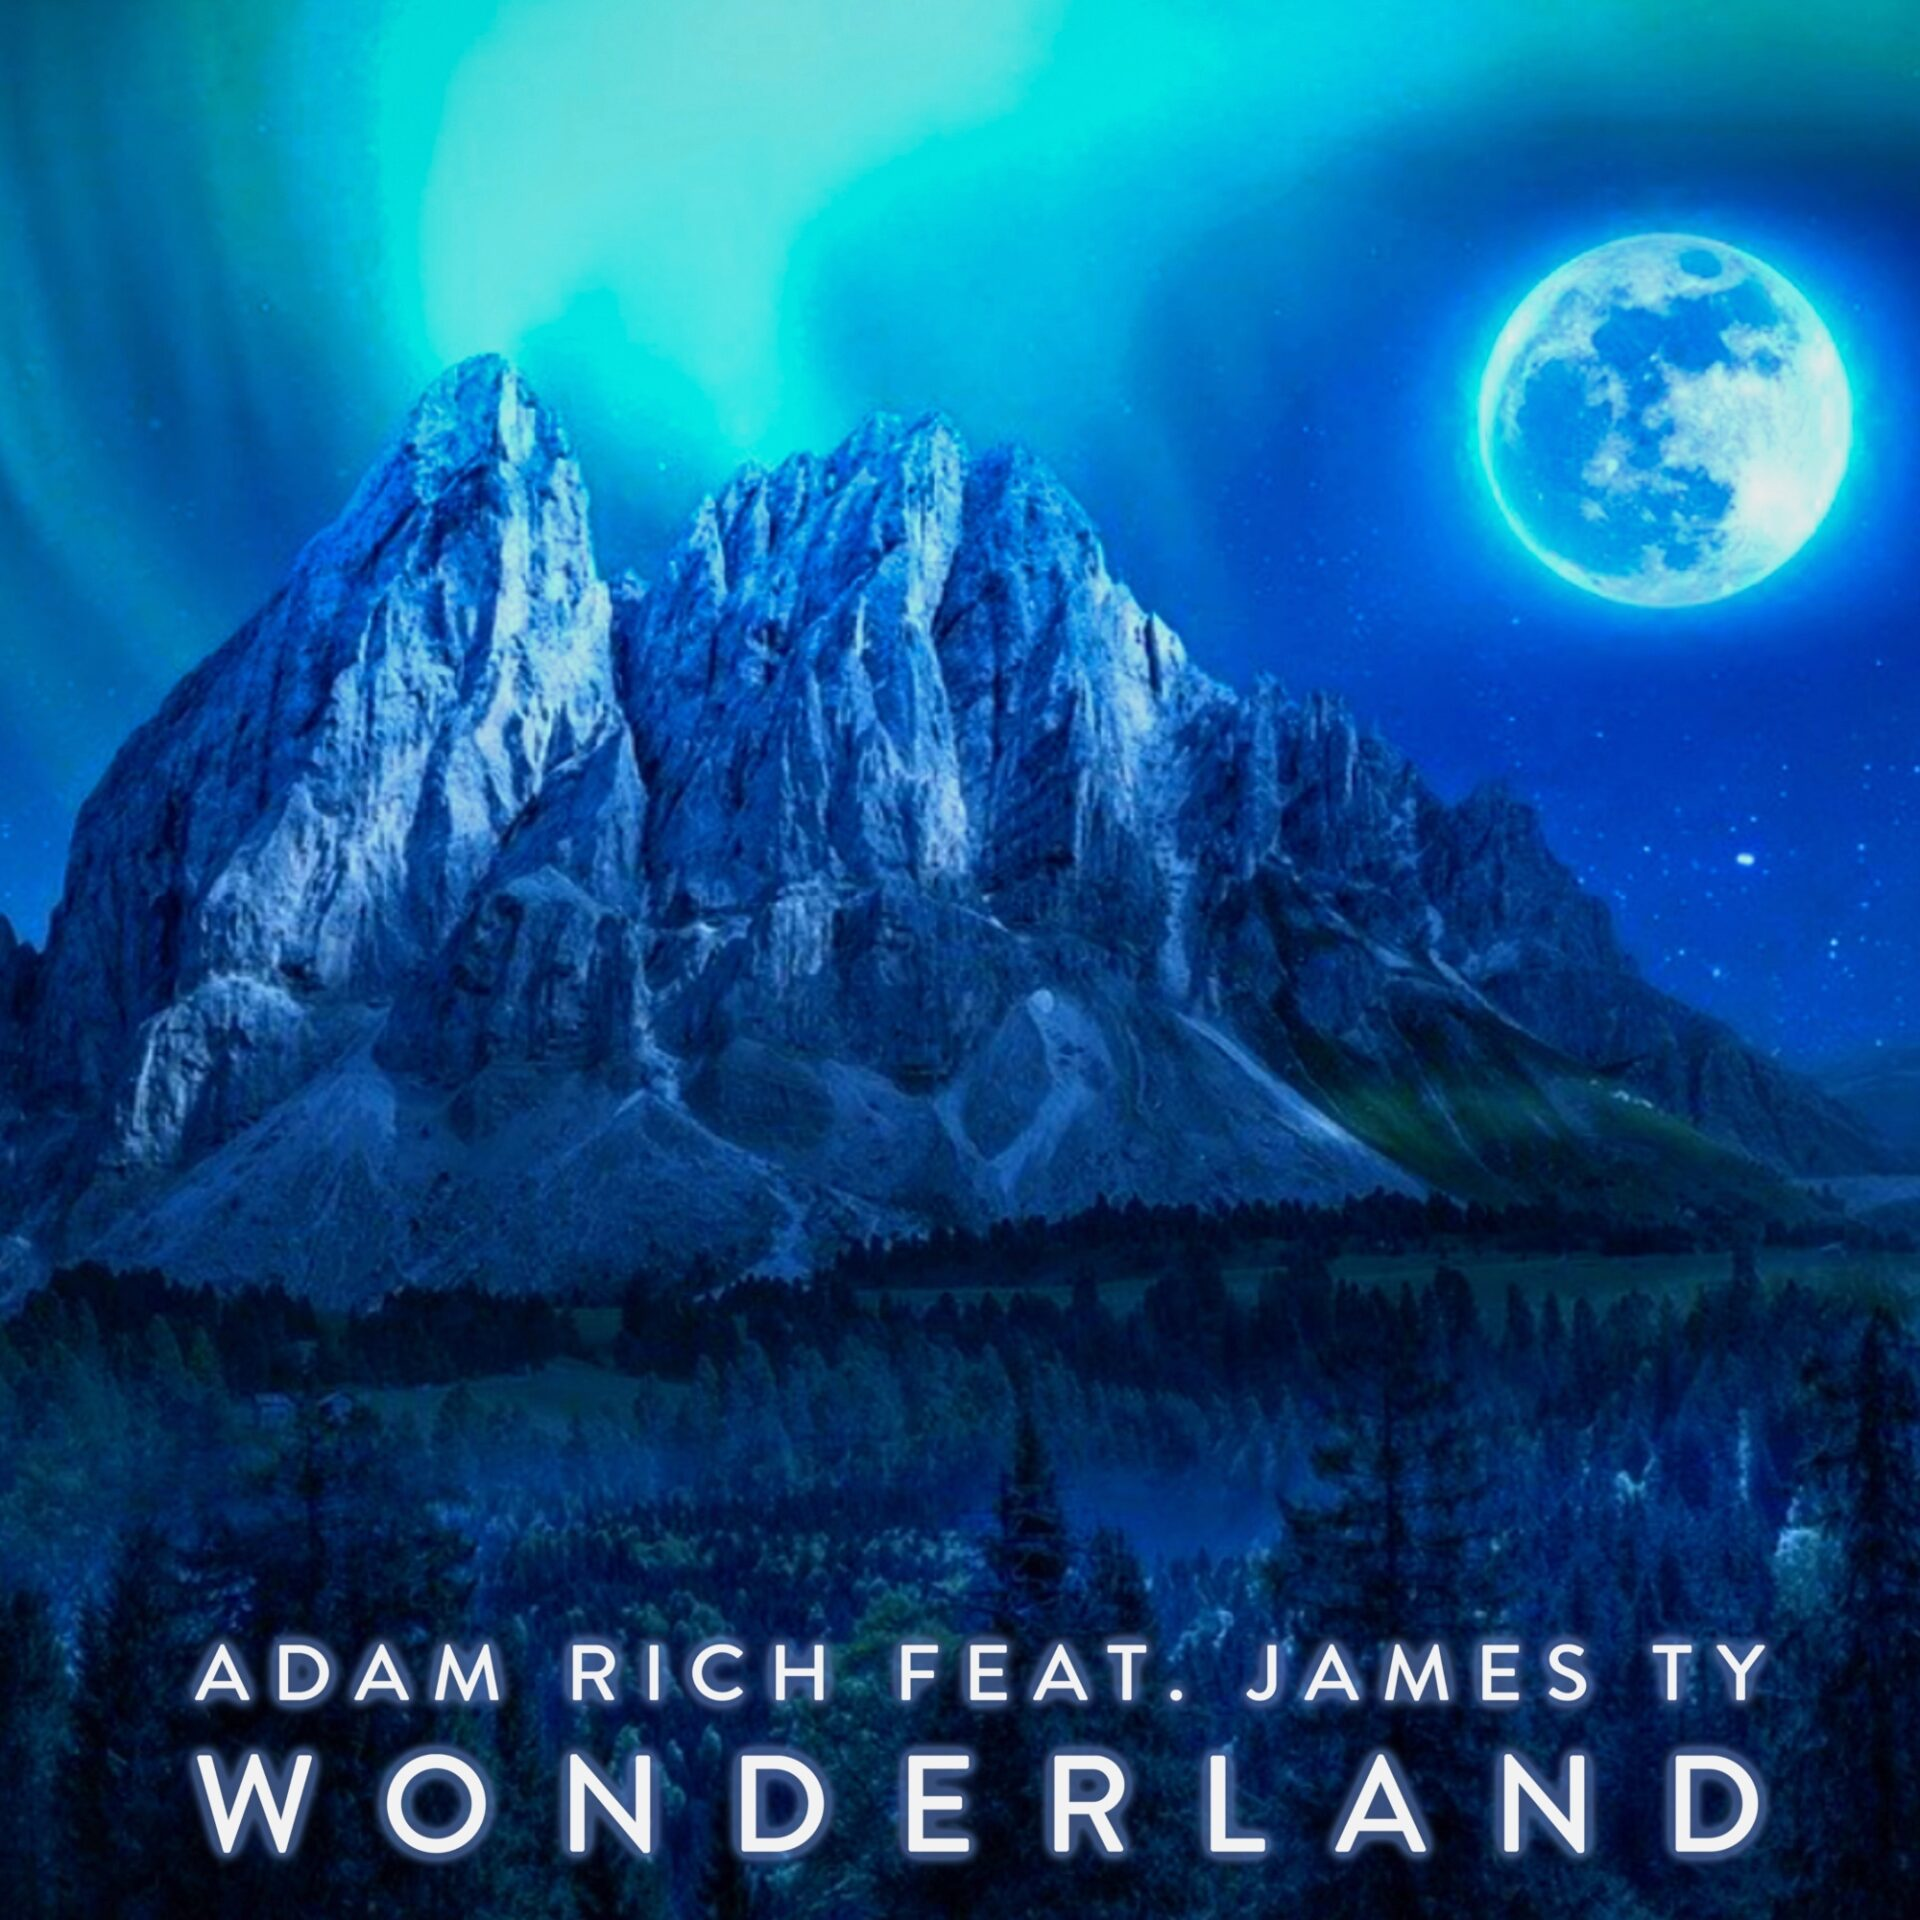 WONDERLAND HAS THE MAKINGS OF A FESTIVAL ANTHEM WITH BOTH MELODIC AND BIG ROOM SOUNDS